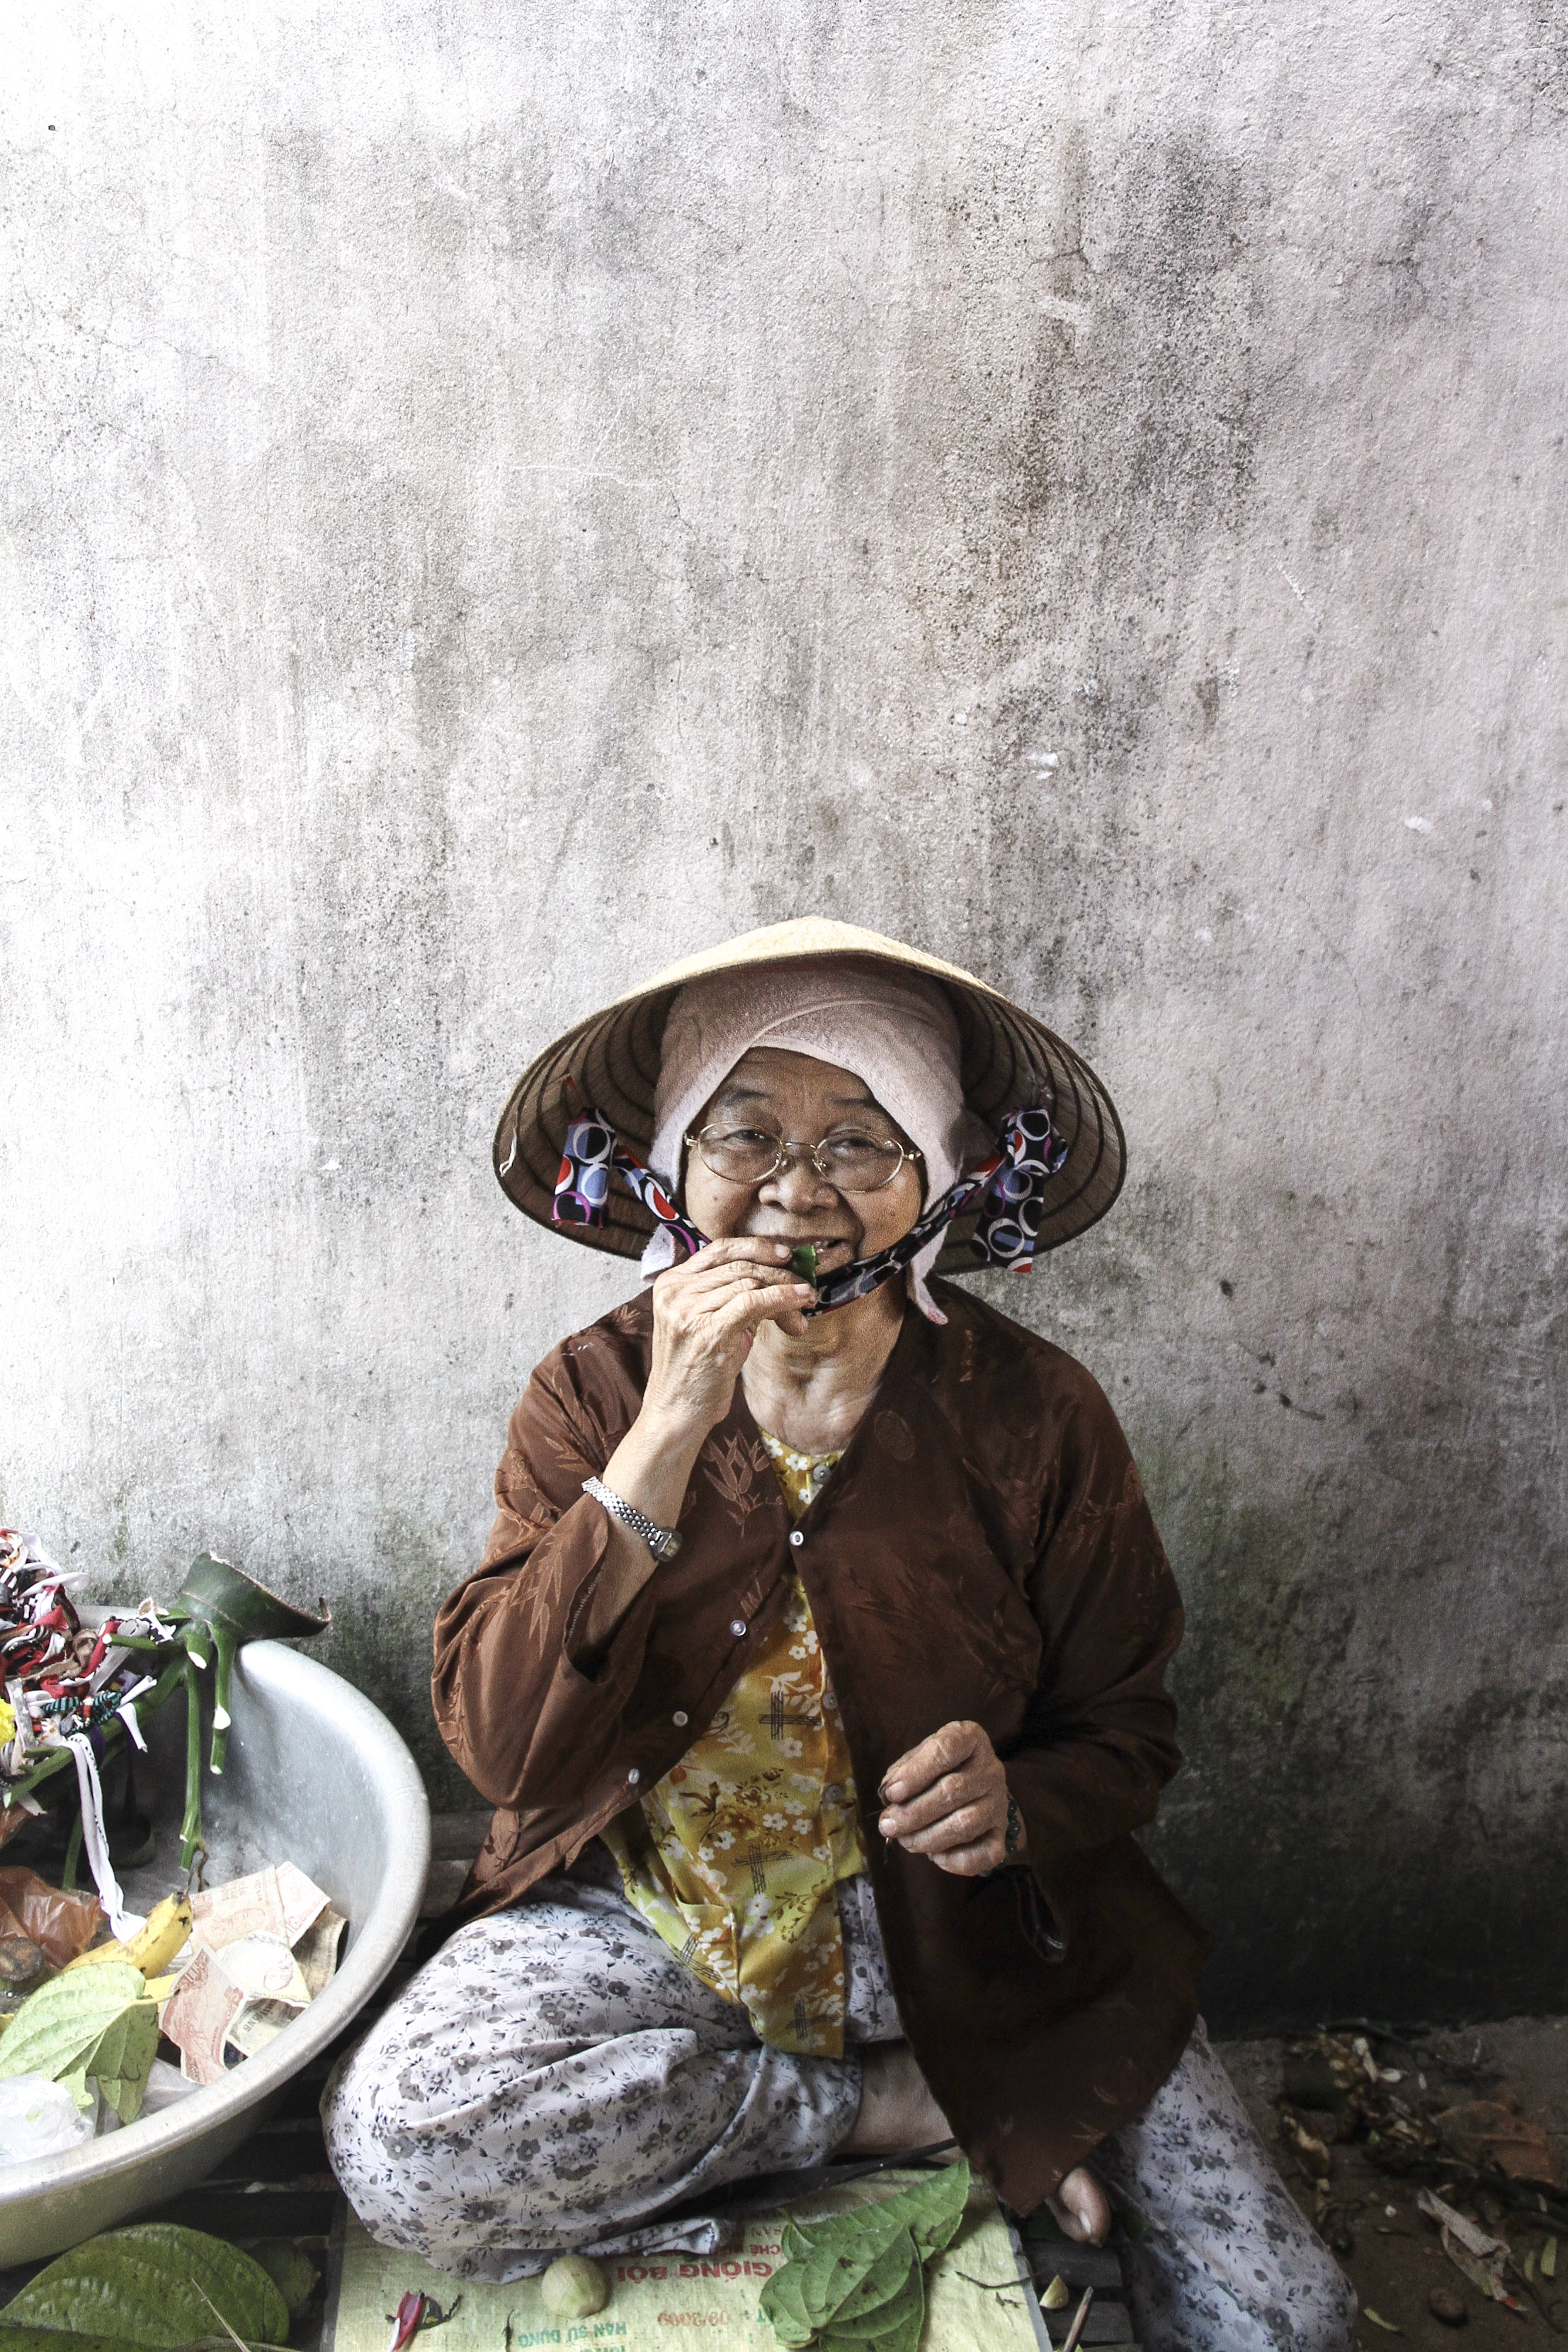 Farmer selling her produce at the market. Hoi An, Vietnam